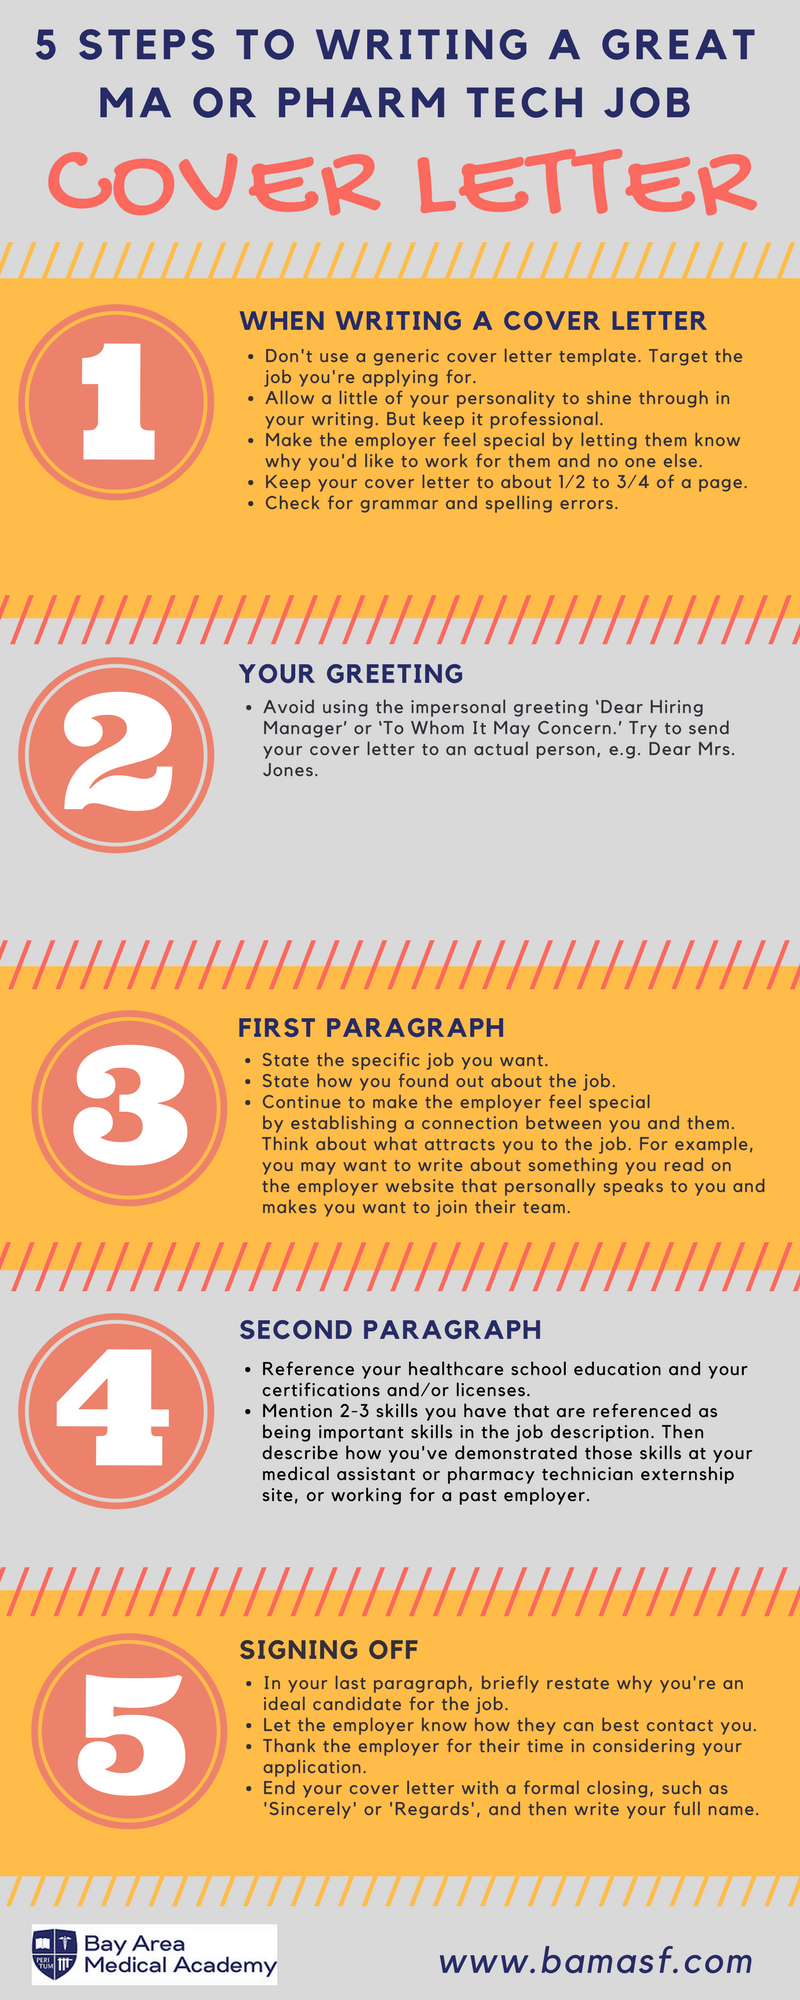 Pharmacy technician cover letter examples pharmacy technician infographic 5 steps to writing a great medical assistant or pharmacy technician job cover letter madrichimfo Image collections